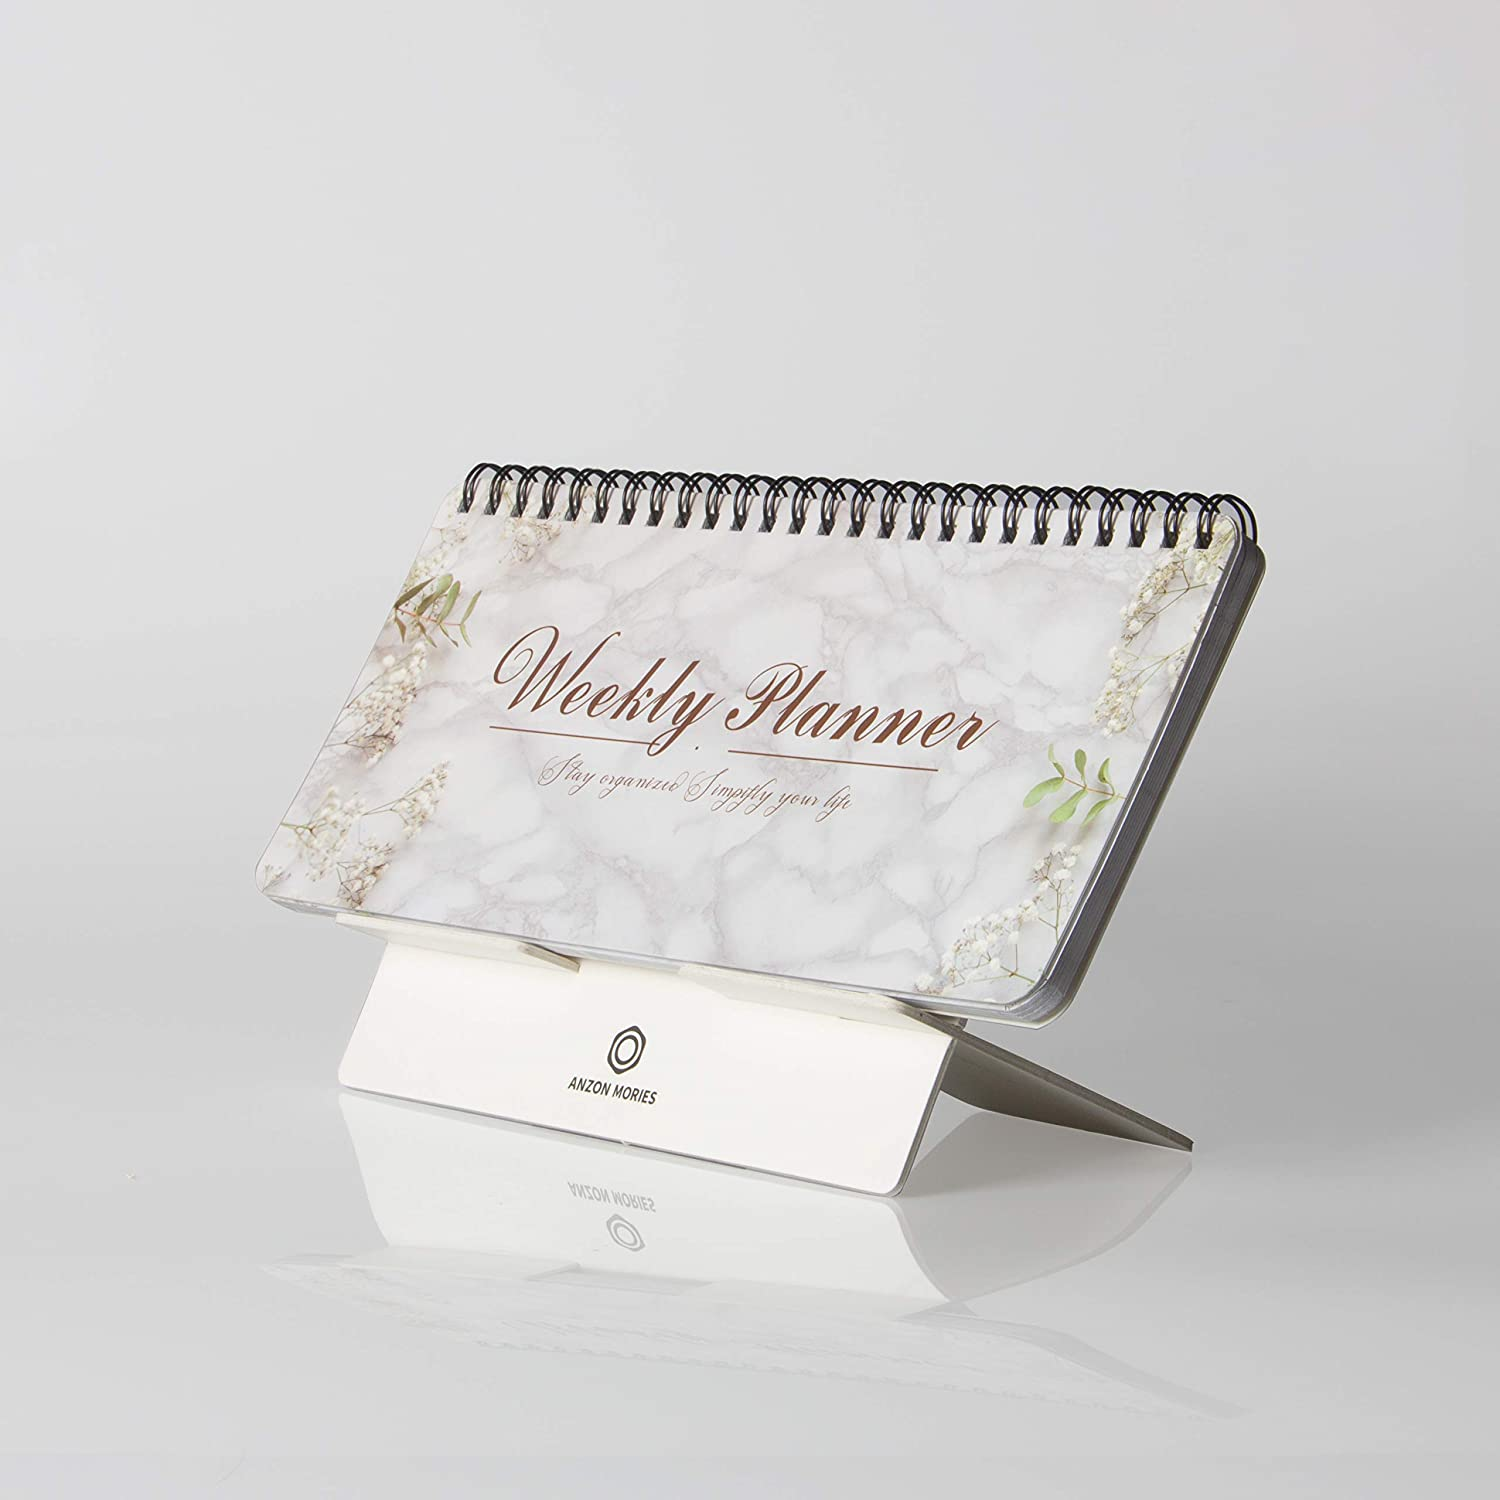 """Portable Weekly Planner v.6 with a Removable Stand - 53 Sheets 9x4"""" Undated Desk Calendar, Spiral scheduler Pad for Home Office, To Do List, Meal Notepad, Appointment Book, Daily Memo, Quick Note"""